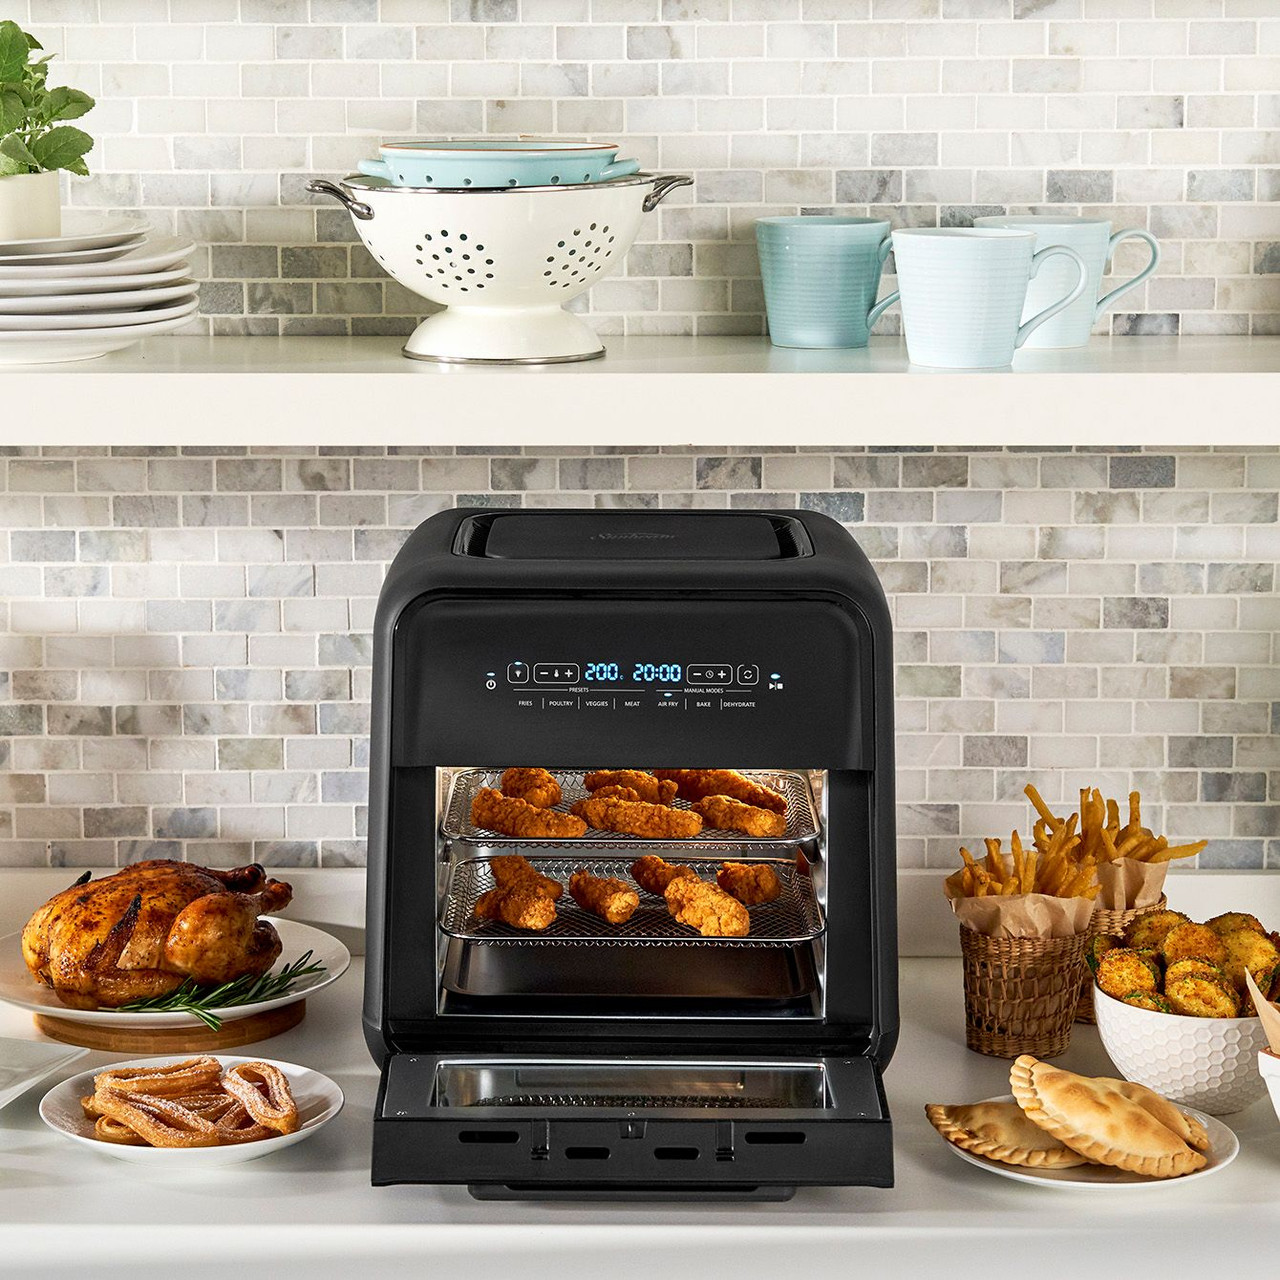 Sunbeam AFP5000BK 4-In-1 10L Air Fryer and Oven with 4 Presets with Timer